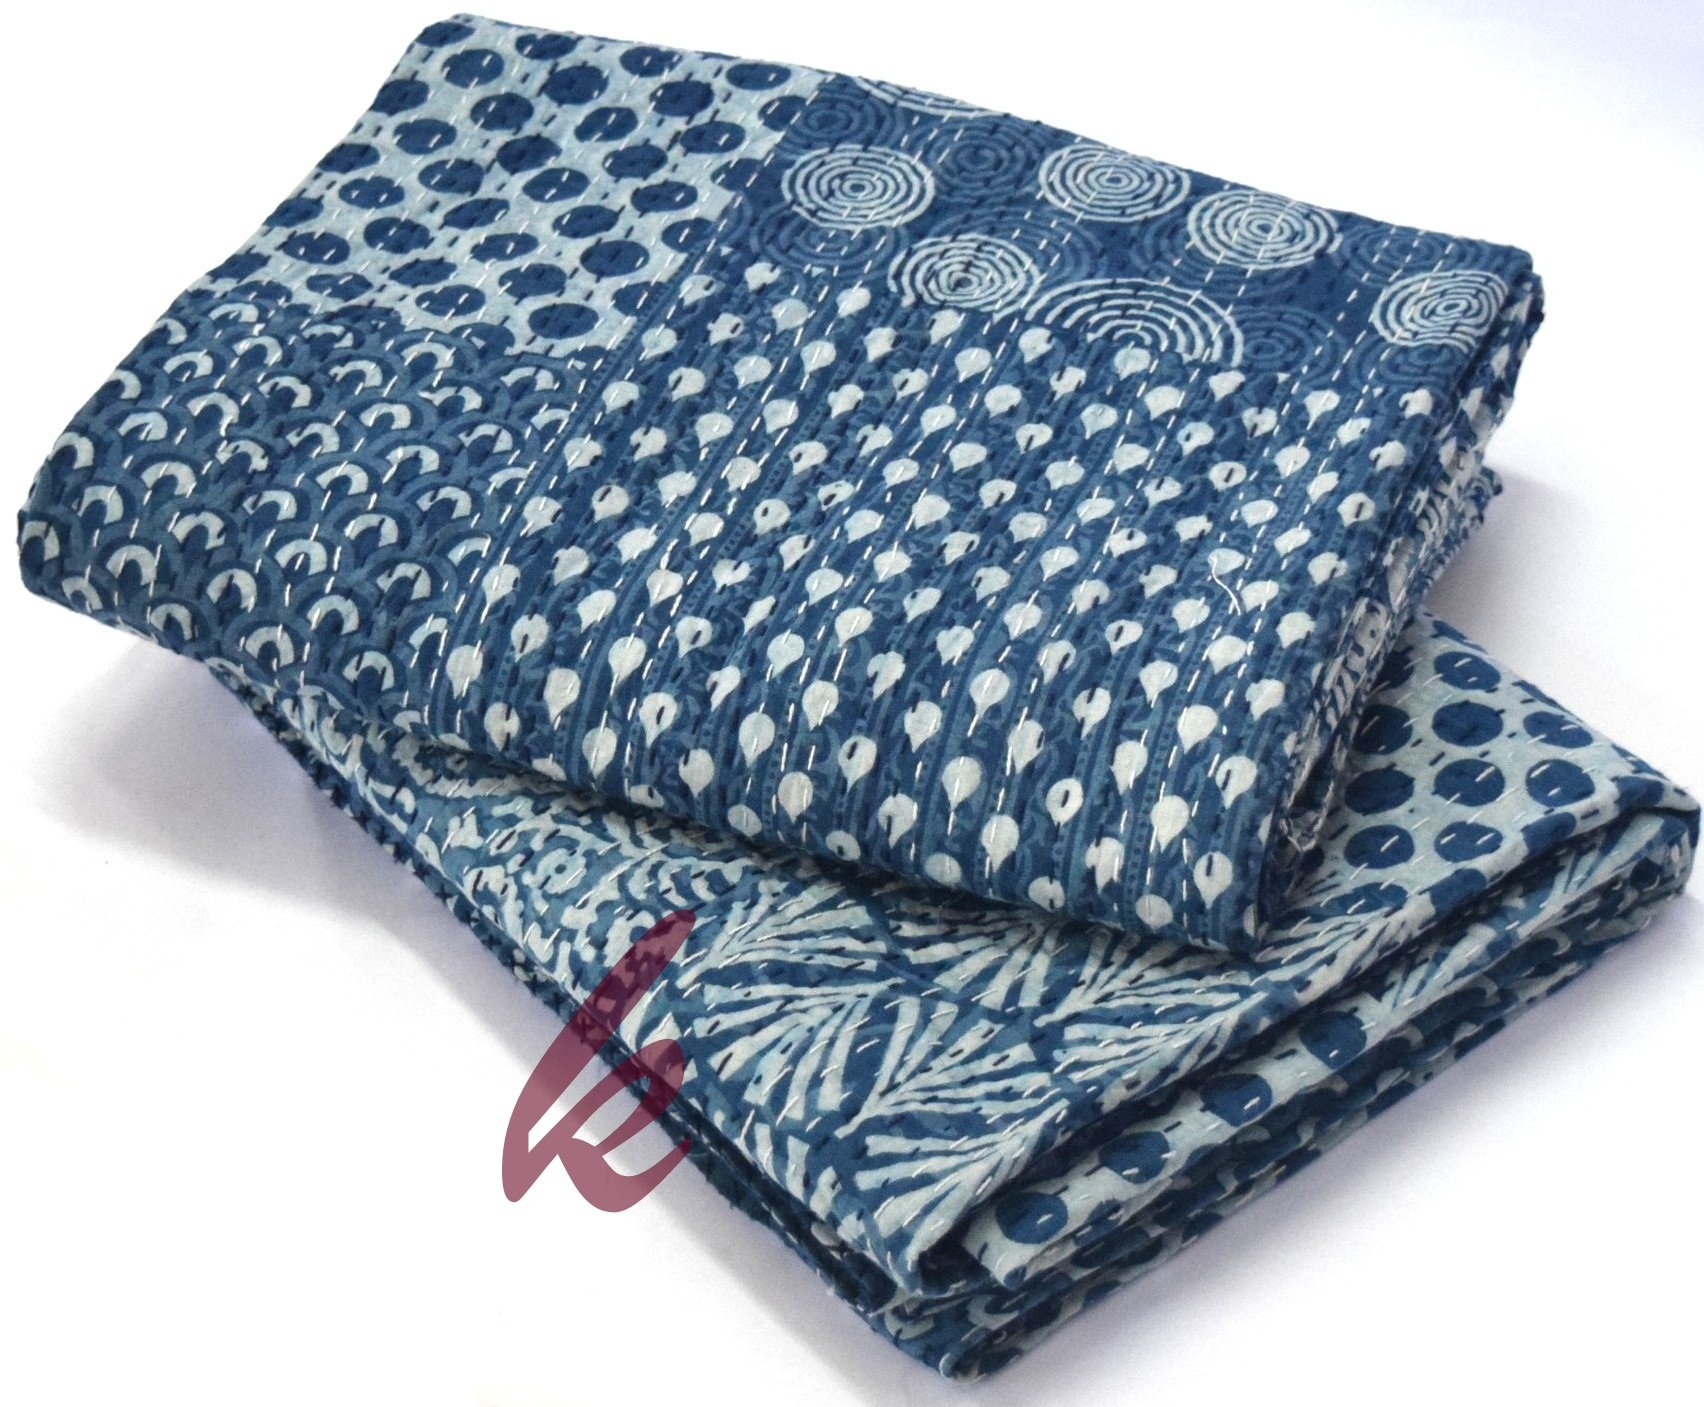 Hand Block Print Bedcover Twin Size Blue Indigo Kantha Quilt Indigo Print Bedcover Indian Kantha Quilt Block Print Bedcover Patchwork Kantha Bedcover kusum creation by kusum creation (Image #1)